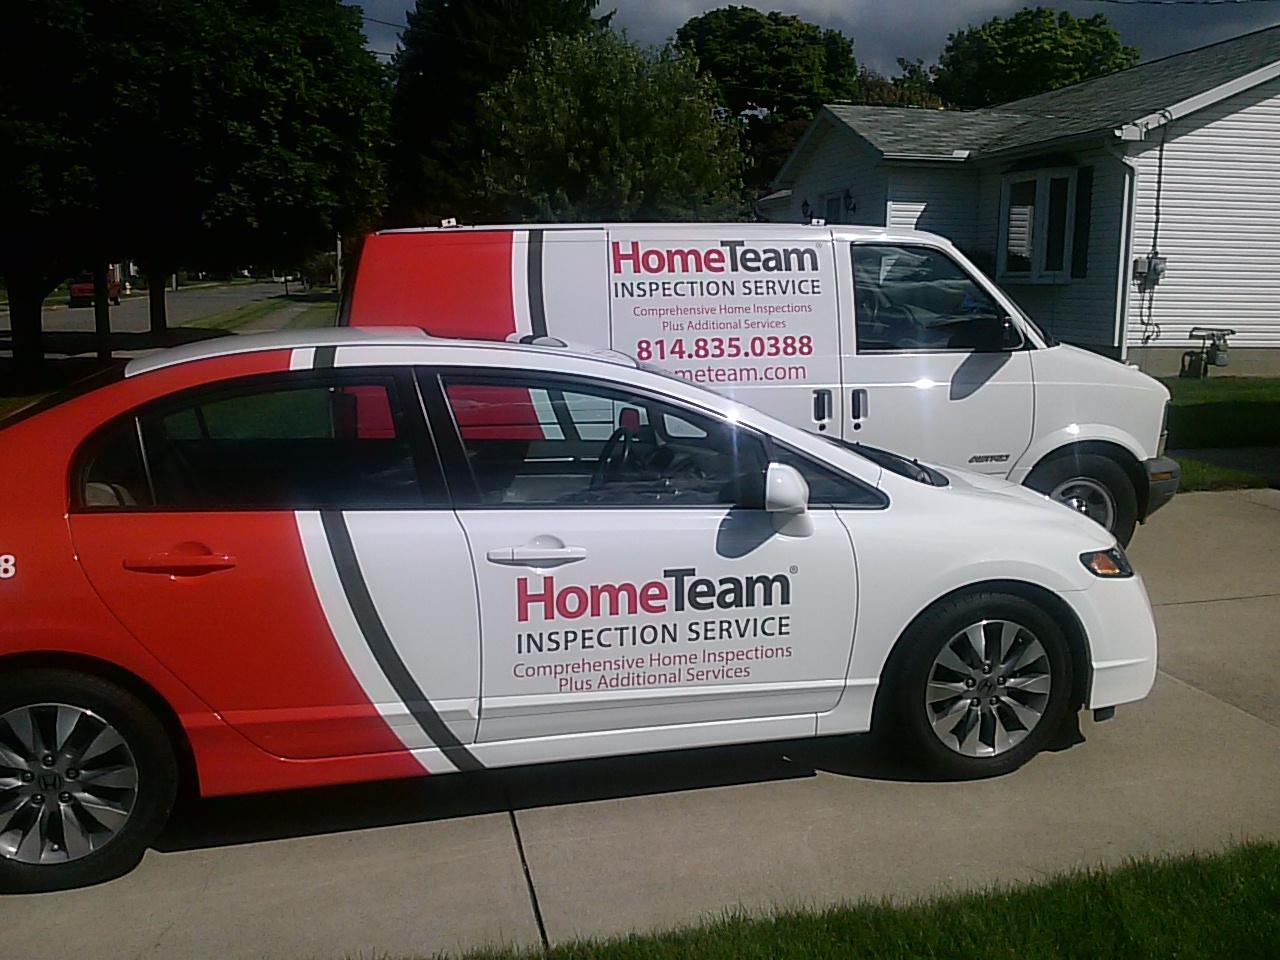 HomeTeam Inspection Service image 8